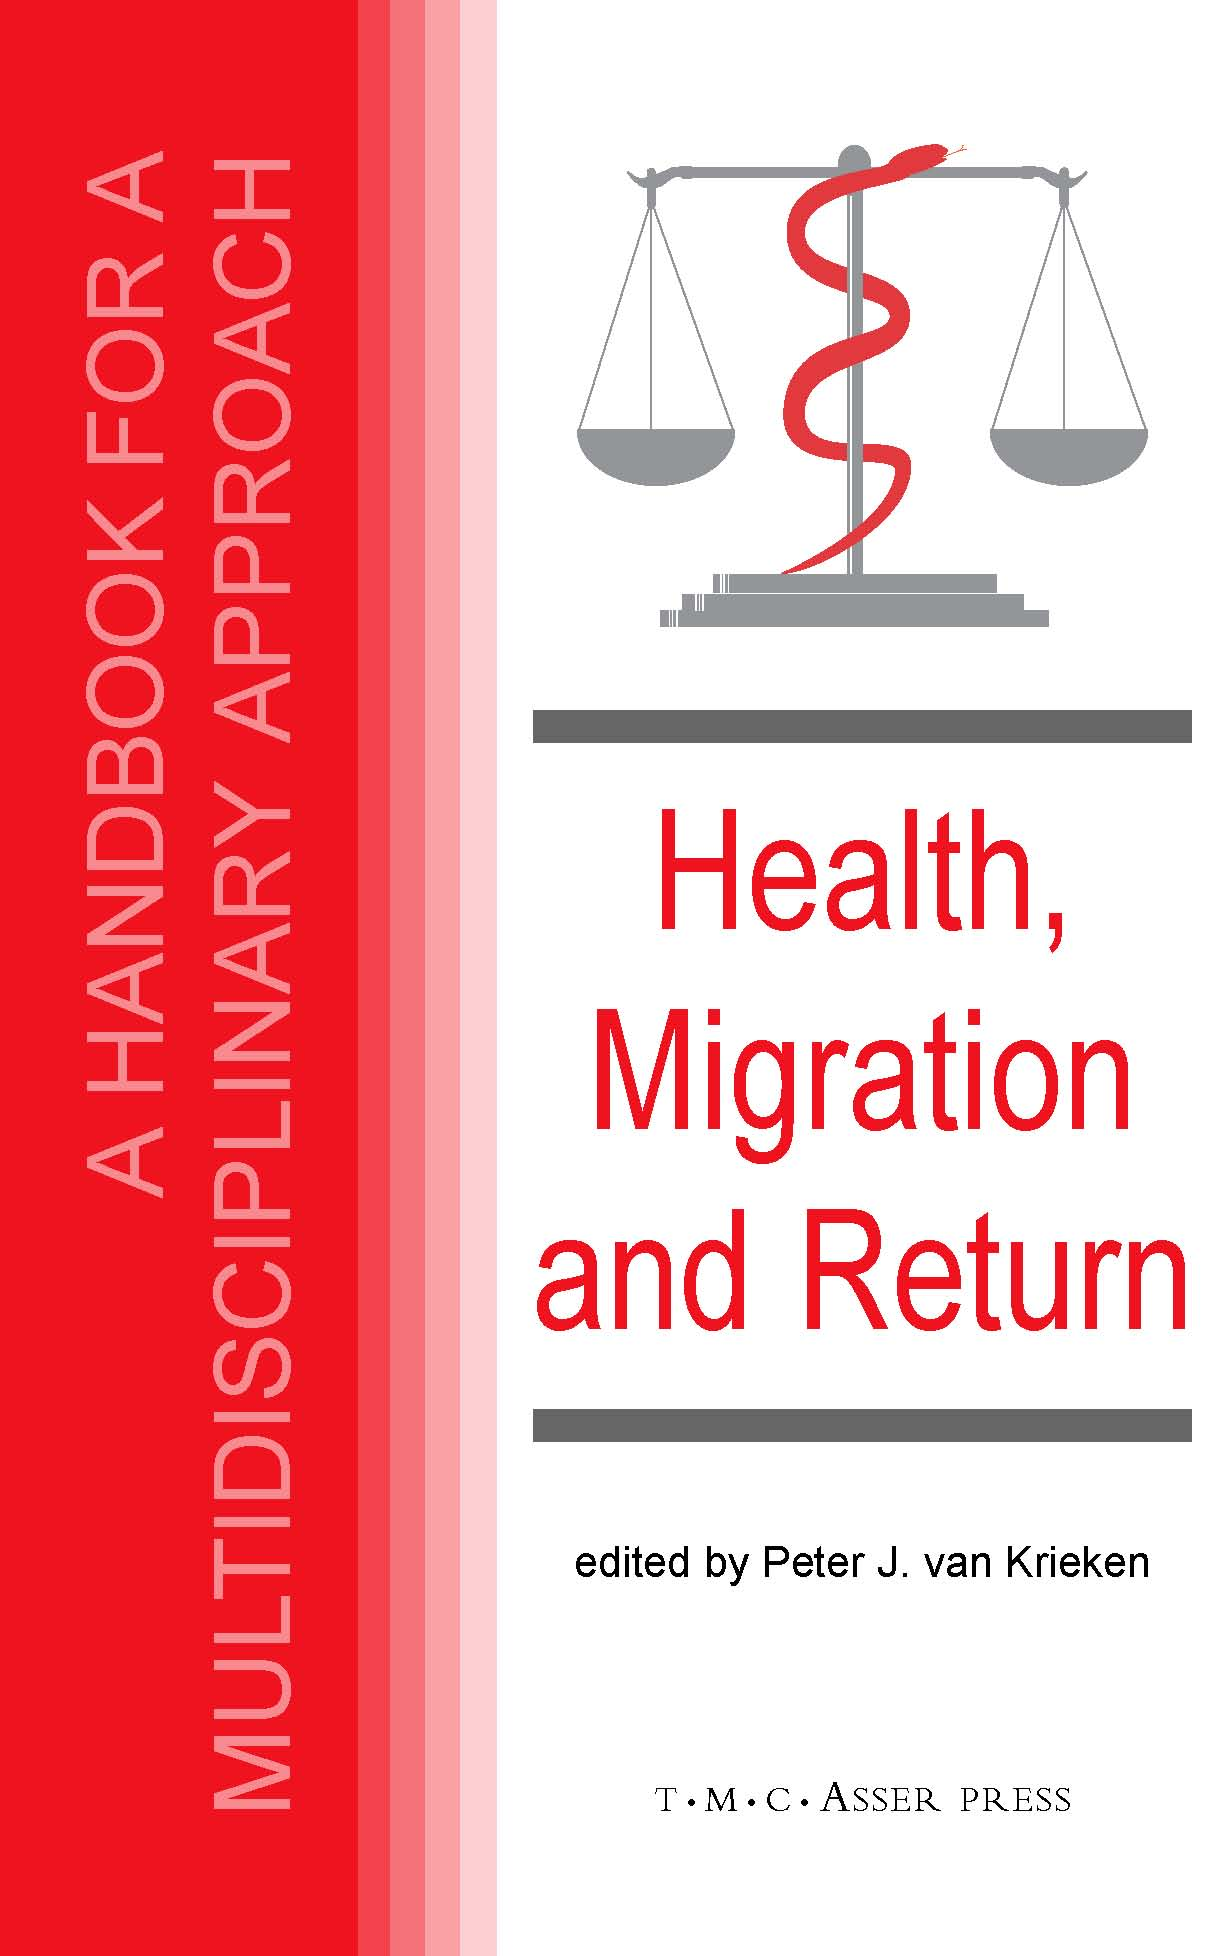 Health, Migration and Return - A Handbook for a Multidisciplinary Approach